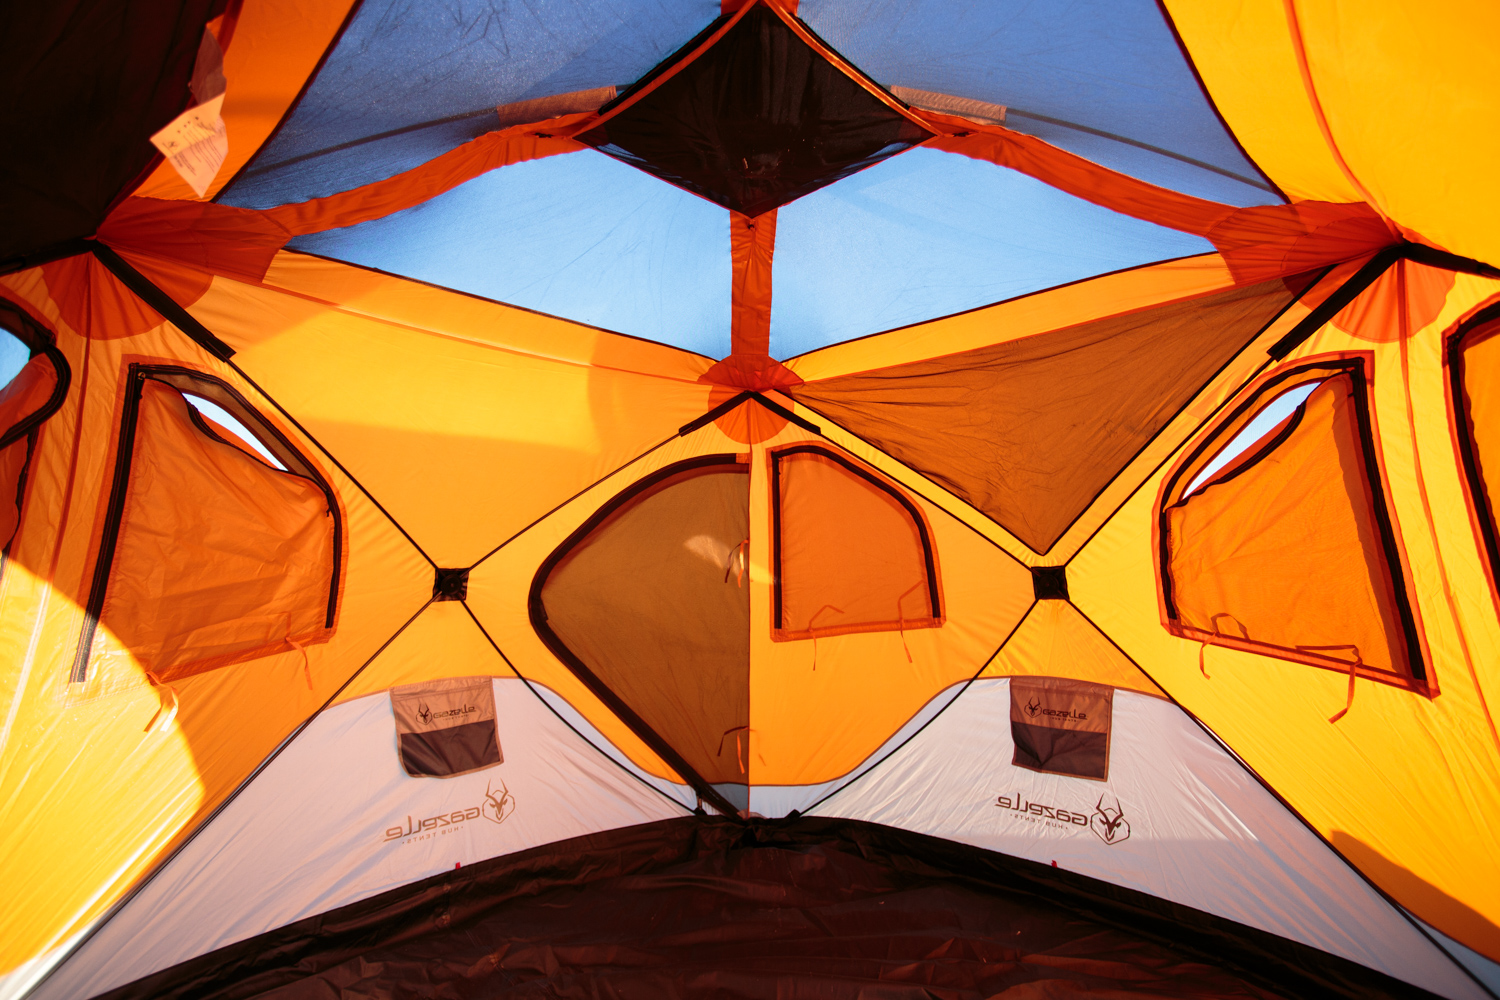 new concept 519c6 103c1 First Look: Gazelle Pop-Up Tent Is Family-Size Palace ...